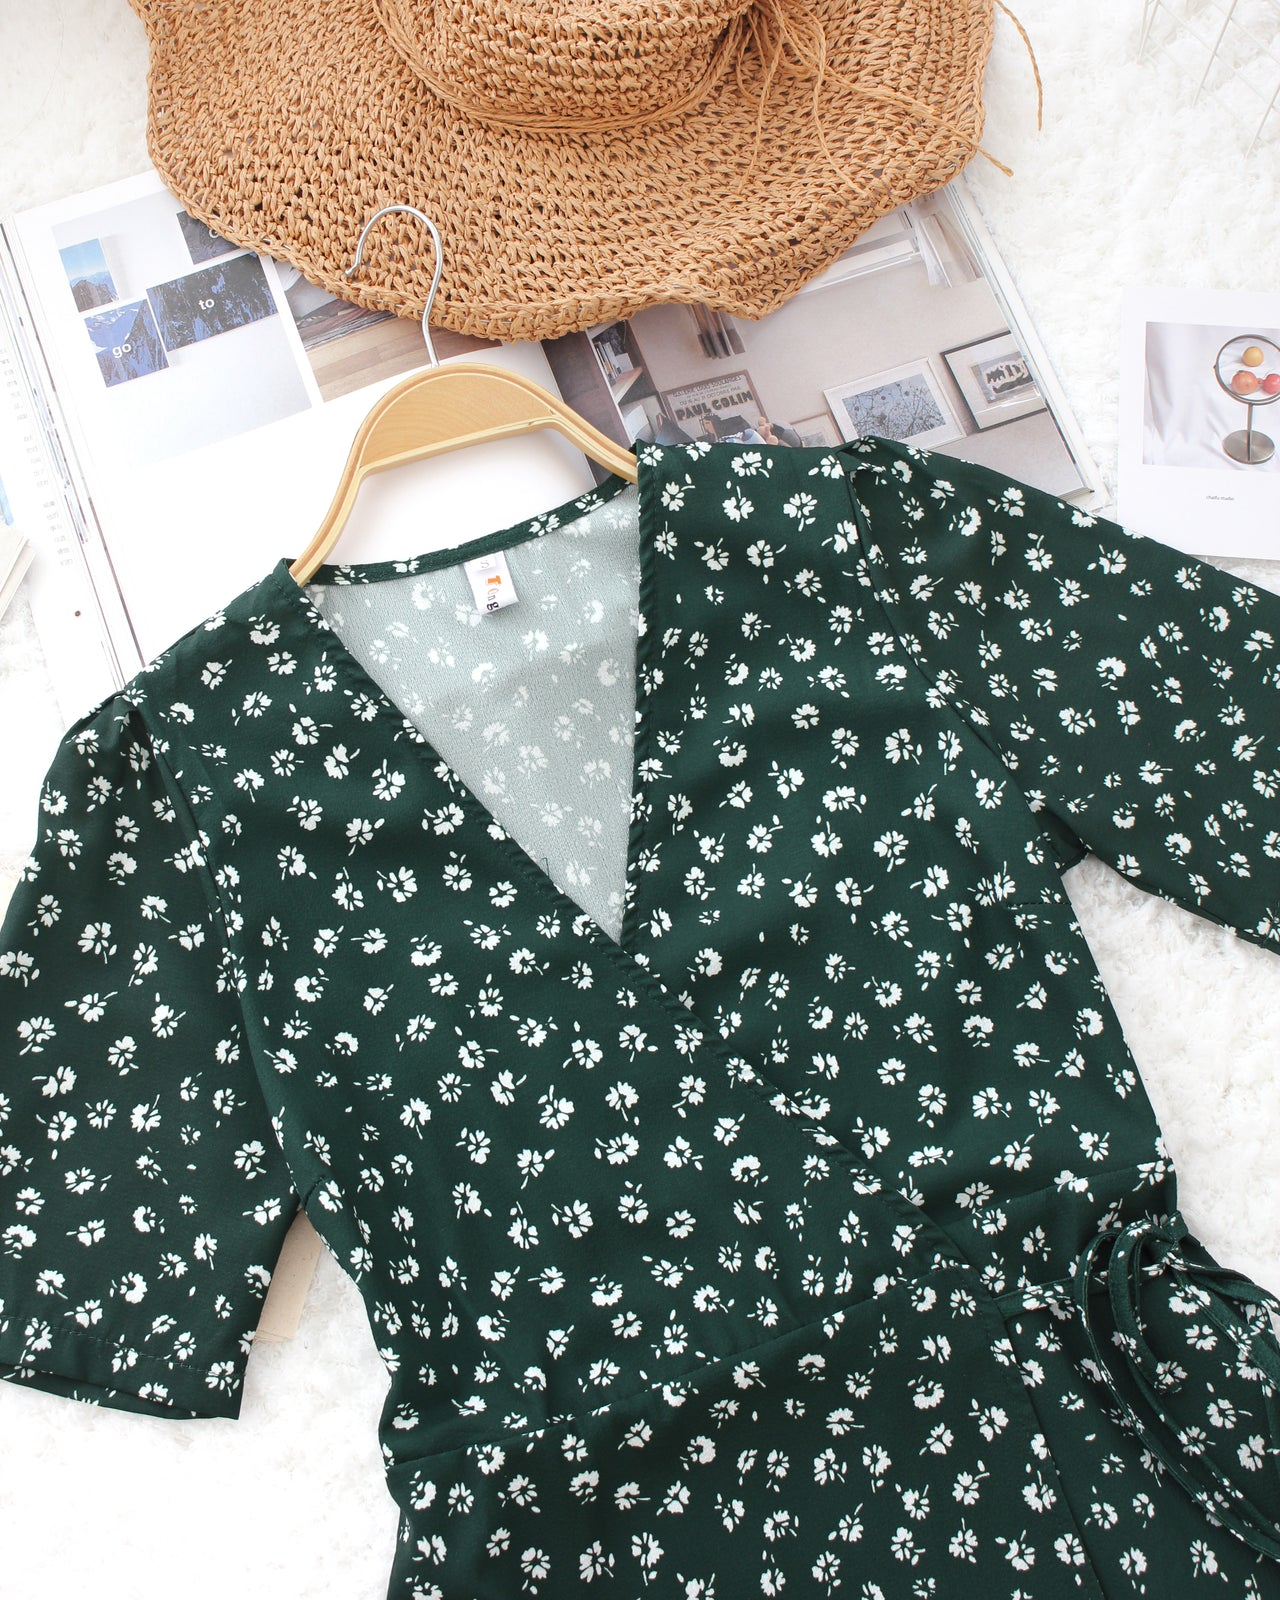 Green Floral Wrap Dress - LovelyMadness Clothing Online Fashion Malaysia